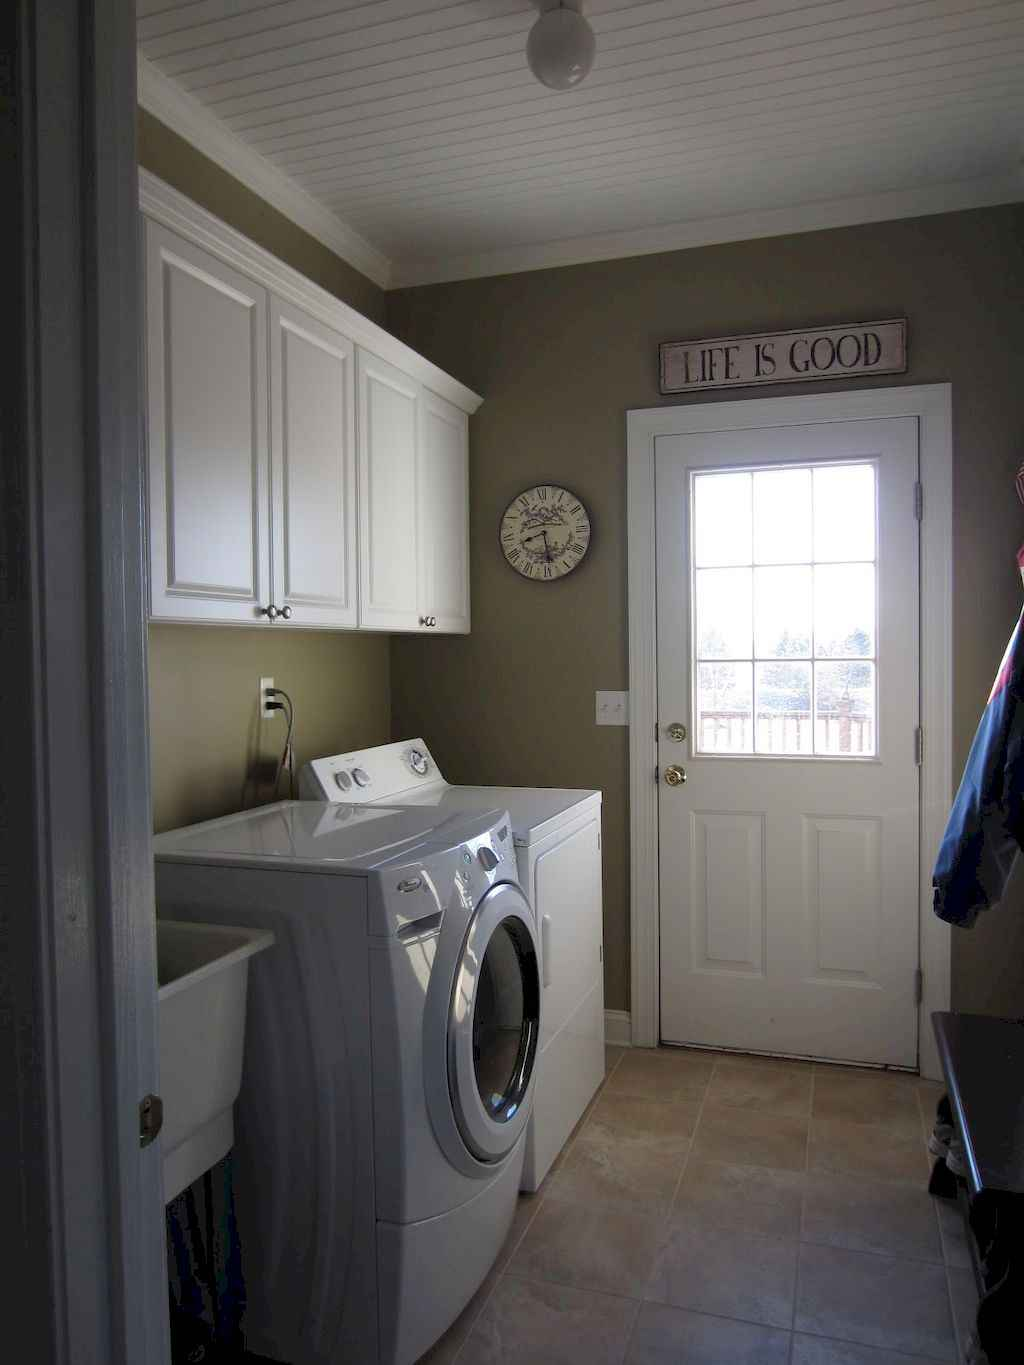 45 Rustic Farmhouse Laundry Room Design Ideas and Makeover (2)